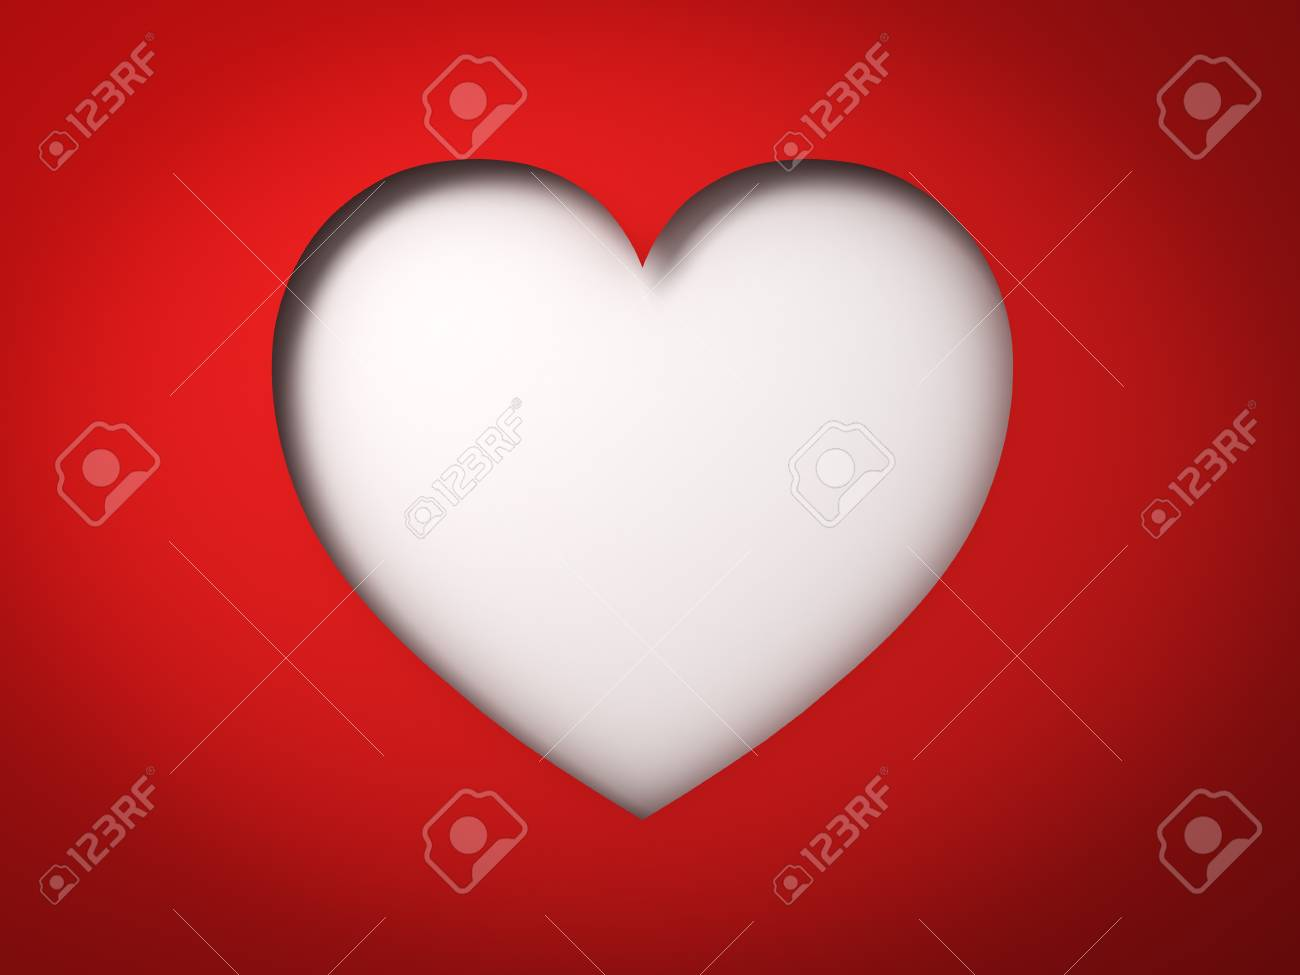 Red Paper Heart Hole Valentines Day Card On Blank White Background With Shadow 3D Rendering Stock